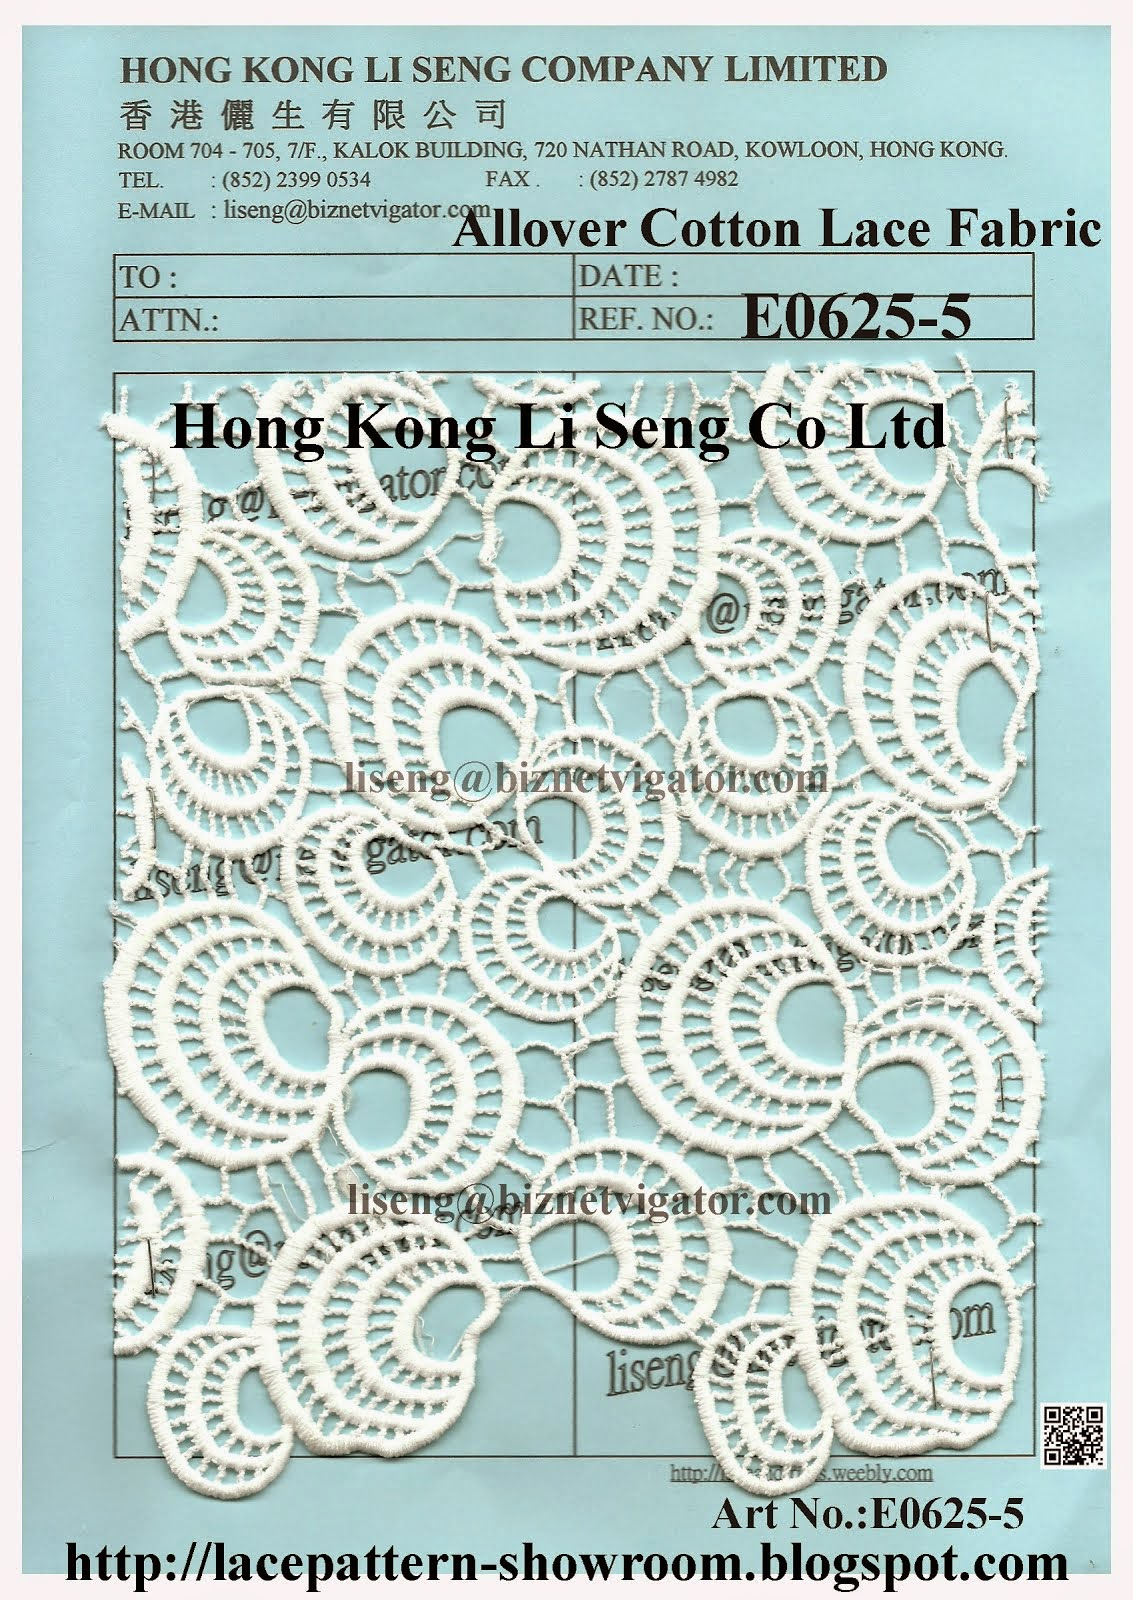 New Allover Cotton Lace Fabric Pattern - Hong Kong Li Seng Co Ltd